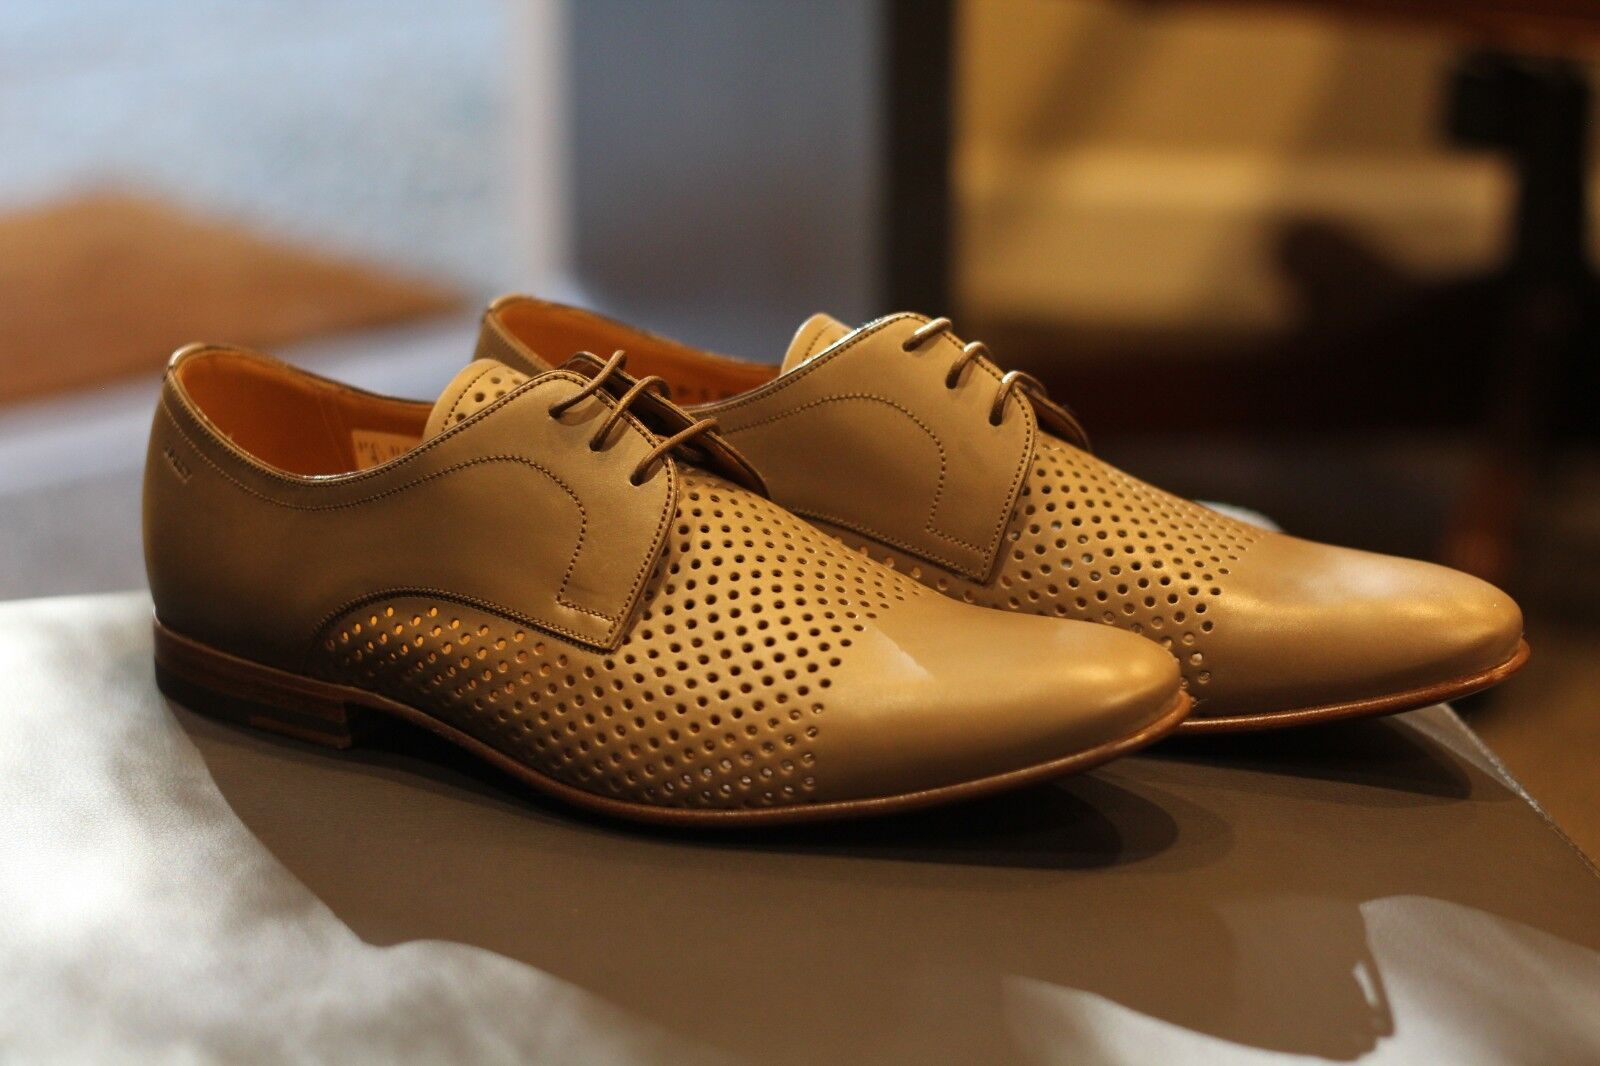 Bally Bellman Fawn Calf Perforated Leather Derby scarpe Swiss Rare New Sz 8.5 D